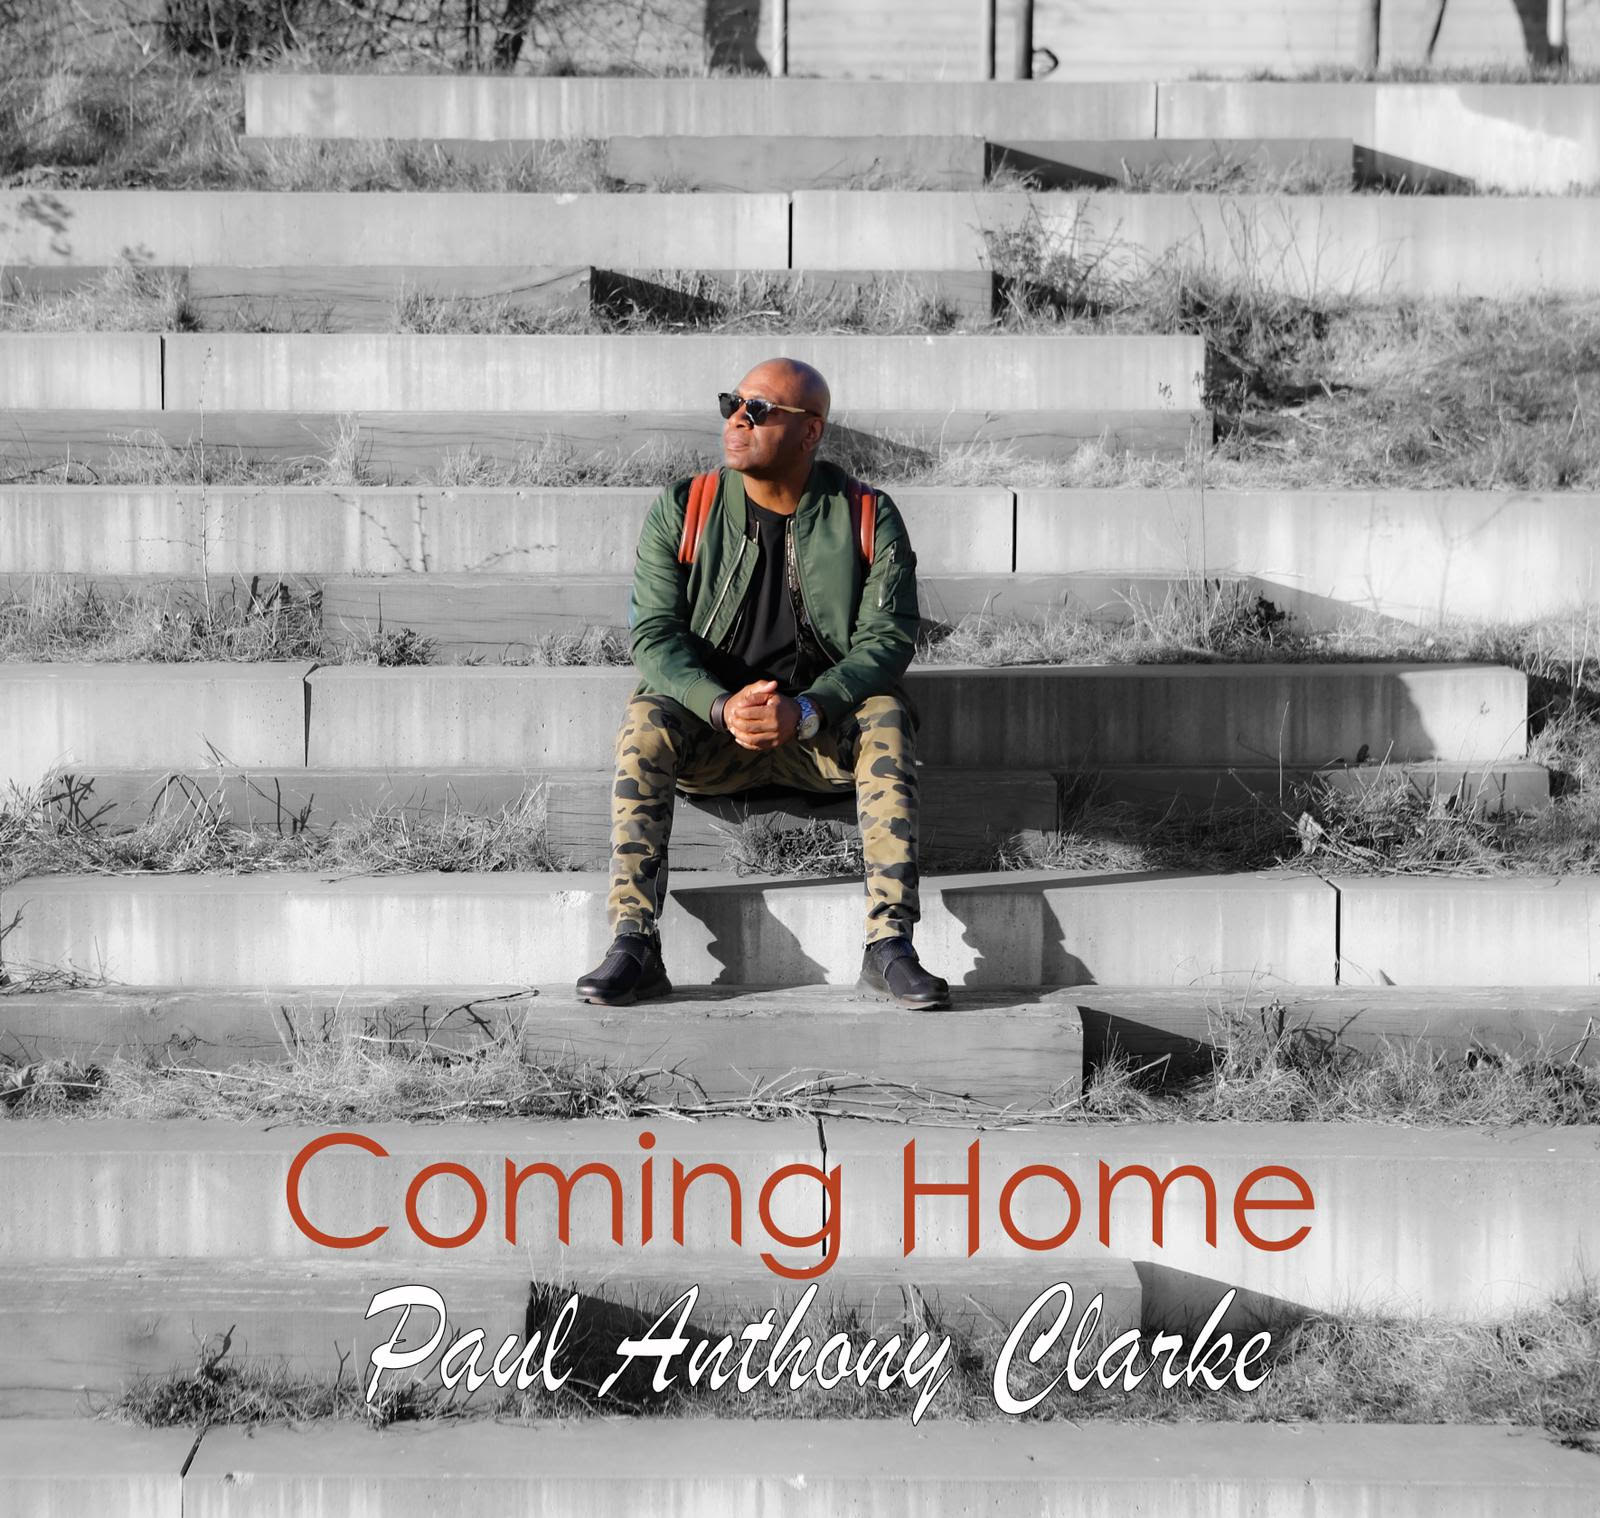 Download MP3 Coming Home by Paul Anthony Clarke(1)